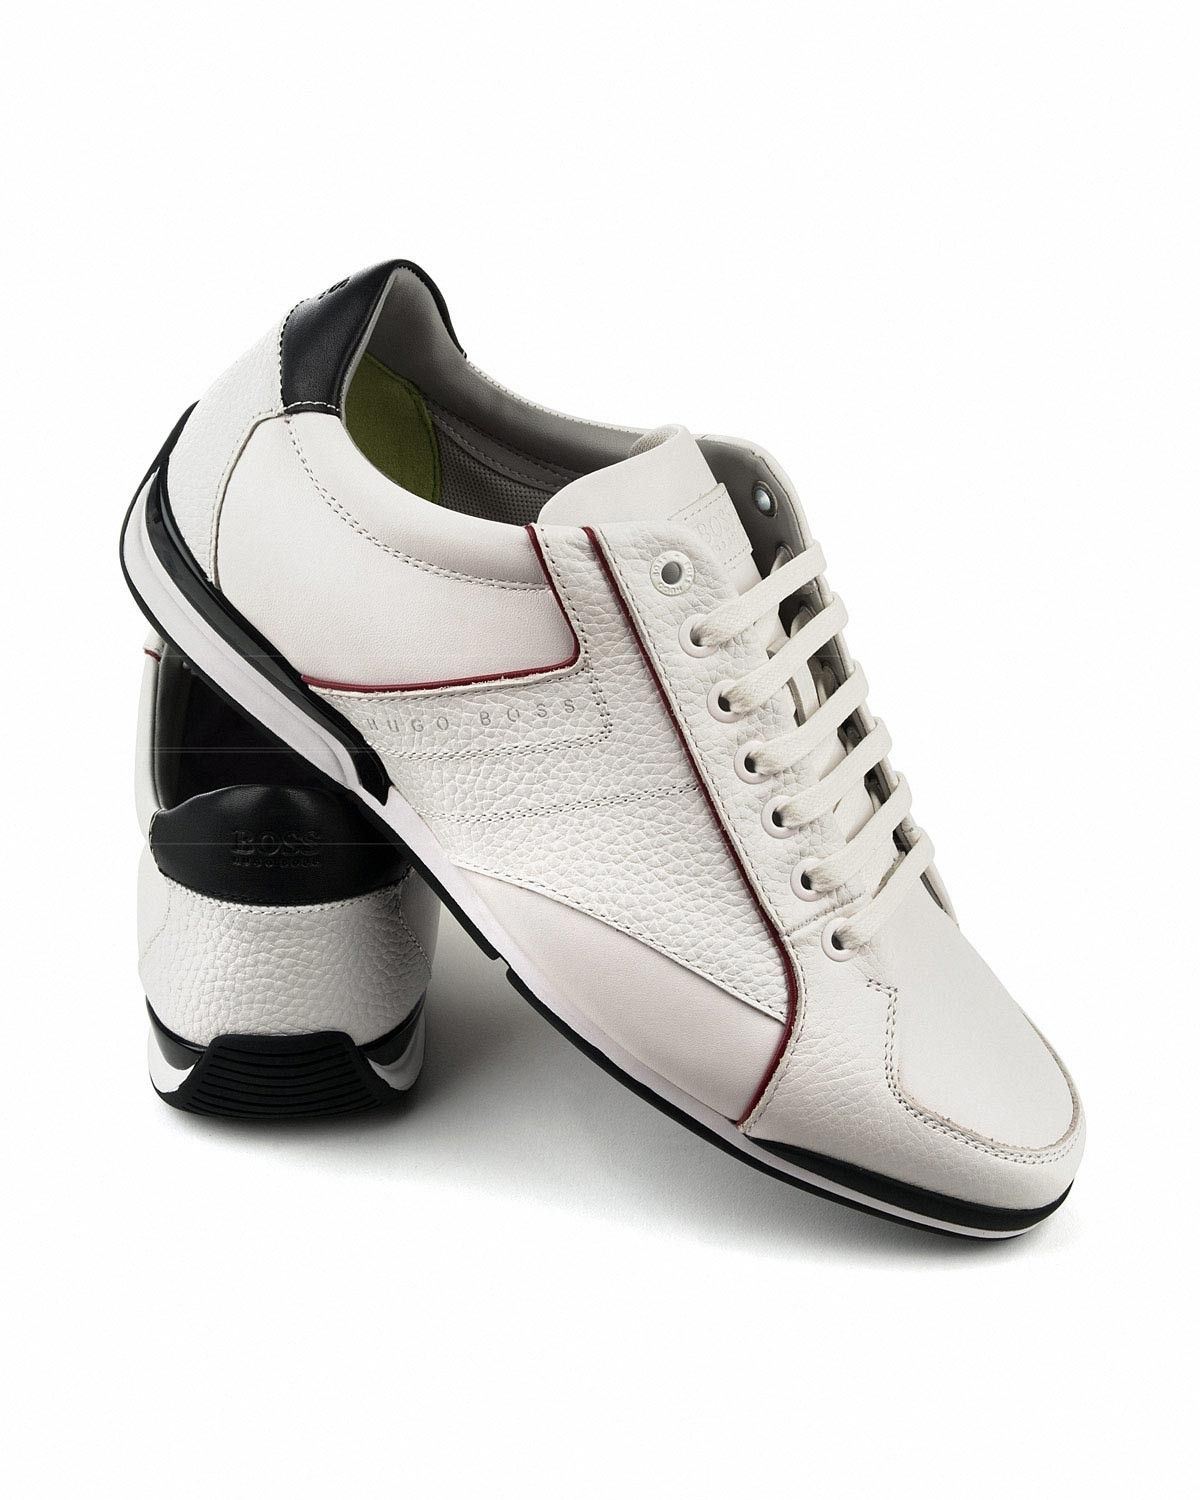 2d5510e56 Hugo Boss White Shoes - Saturn Lowp Lux3 en 2019 | Hugo Boss | Hugo ...